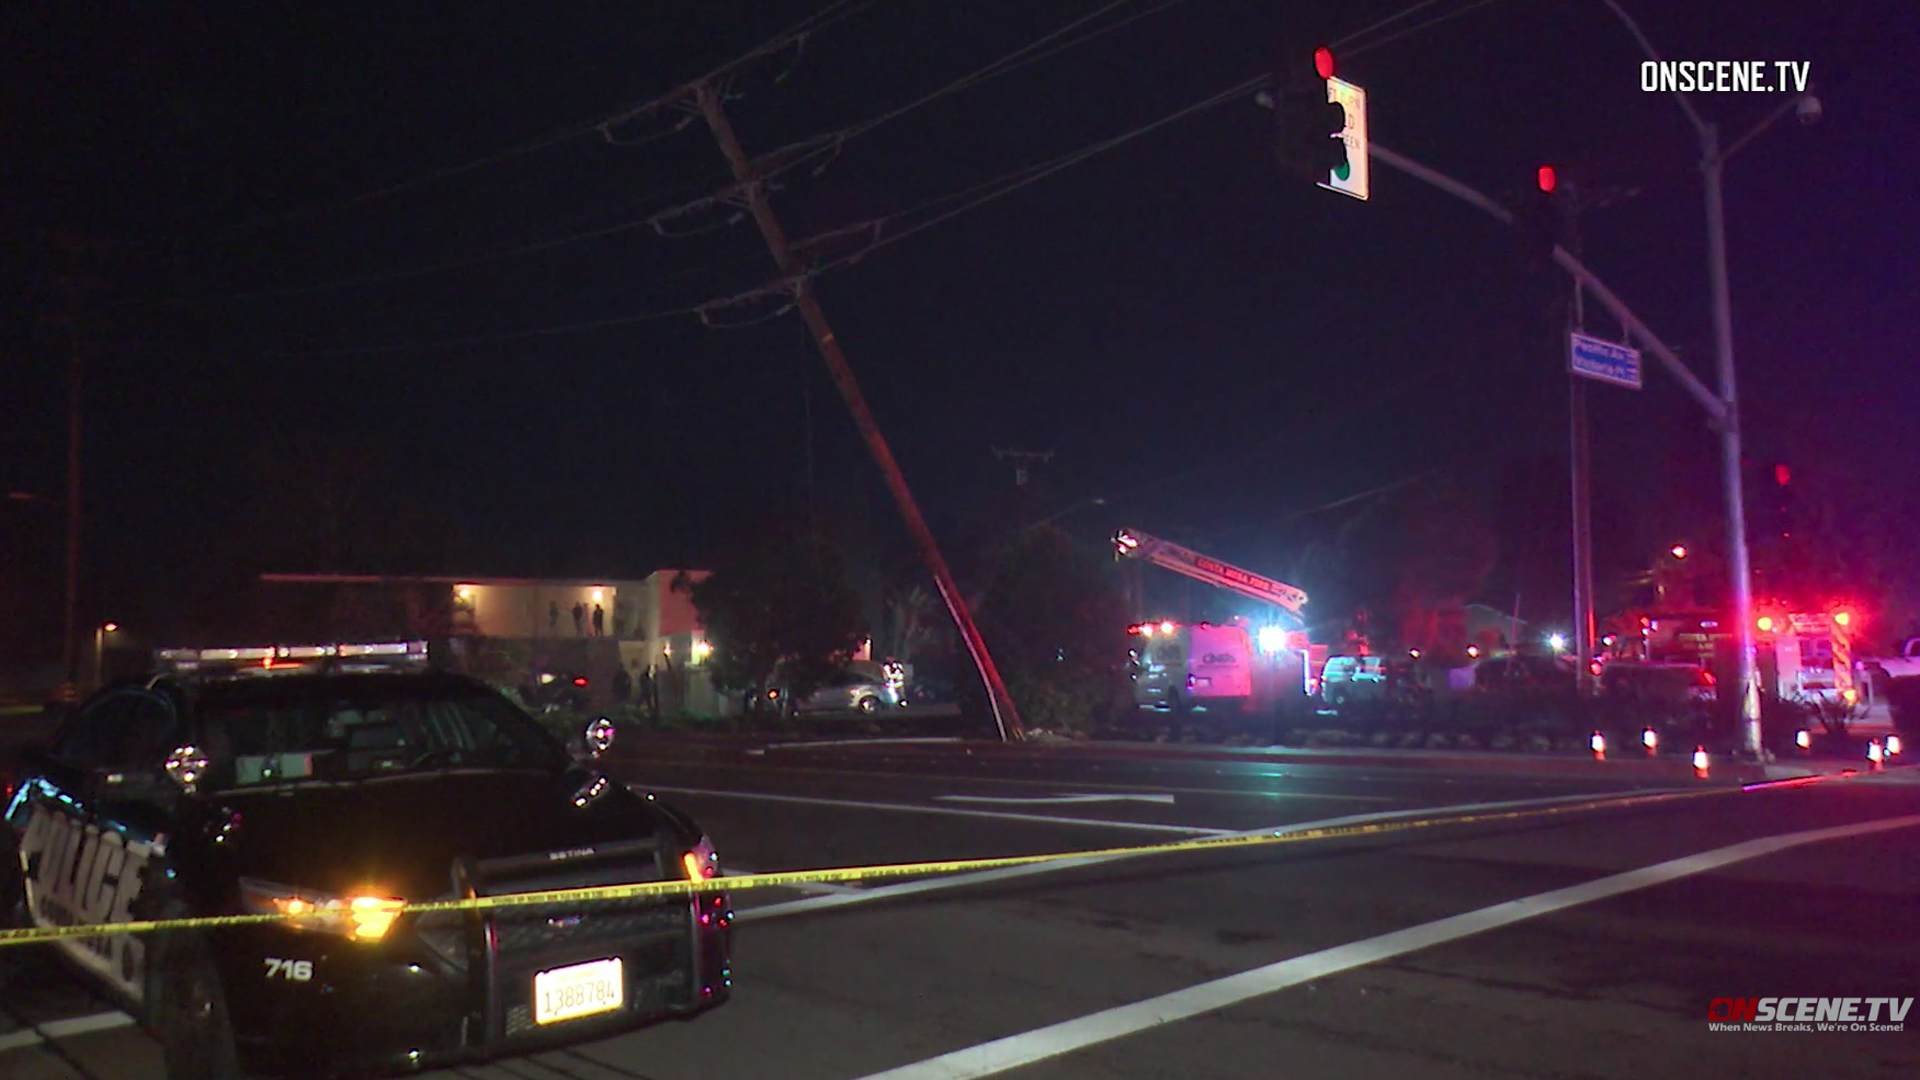 A utility pole is seen leaning following a fatal SUV crash in Costa Mesa on Dec. 8, 2018. (Credit: Onscene.tv)